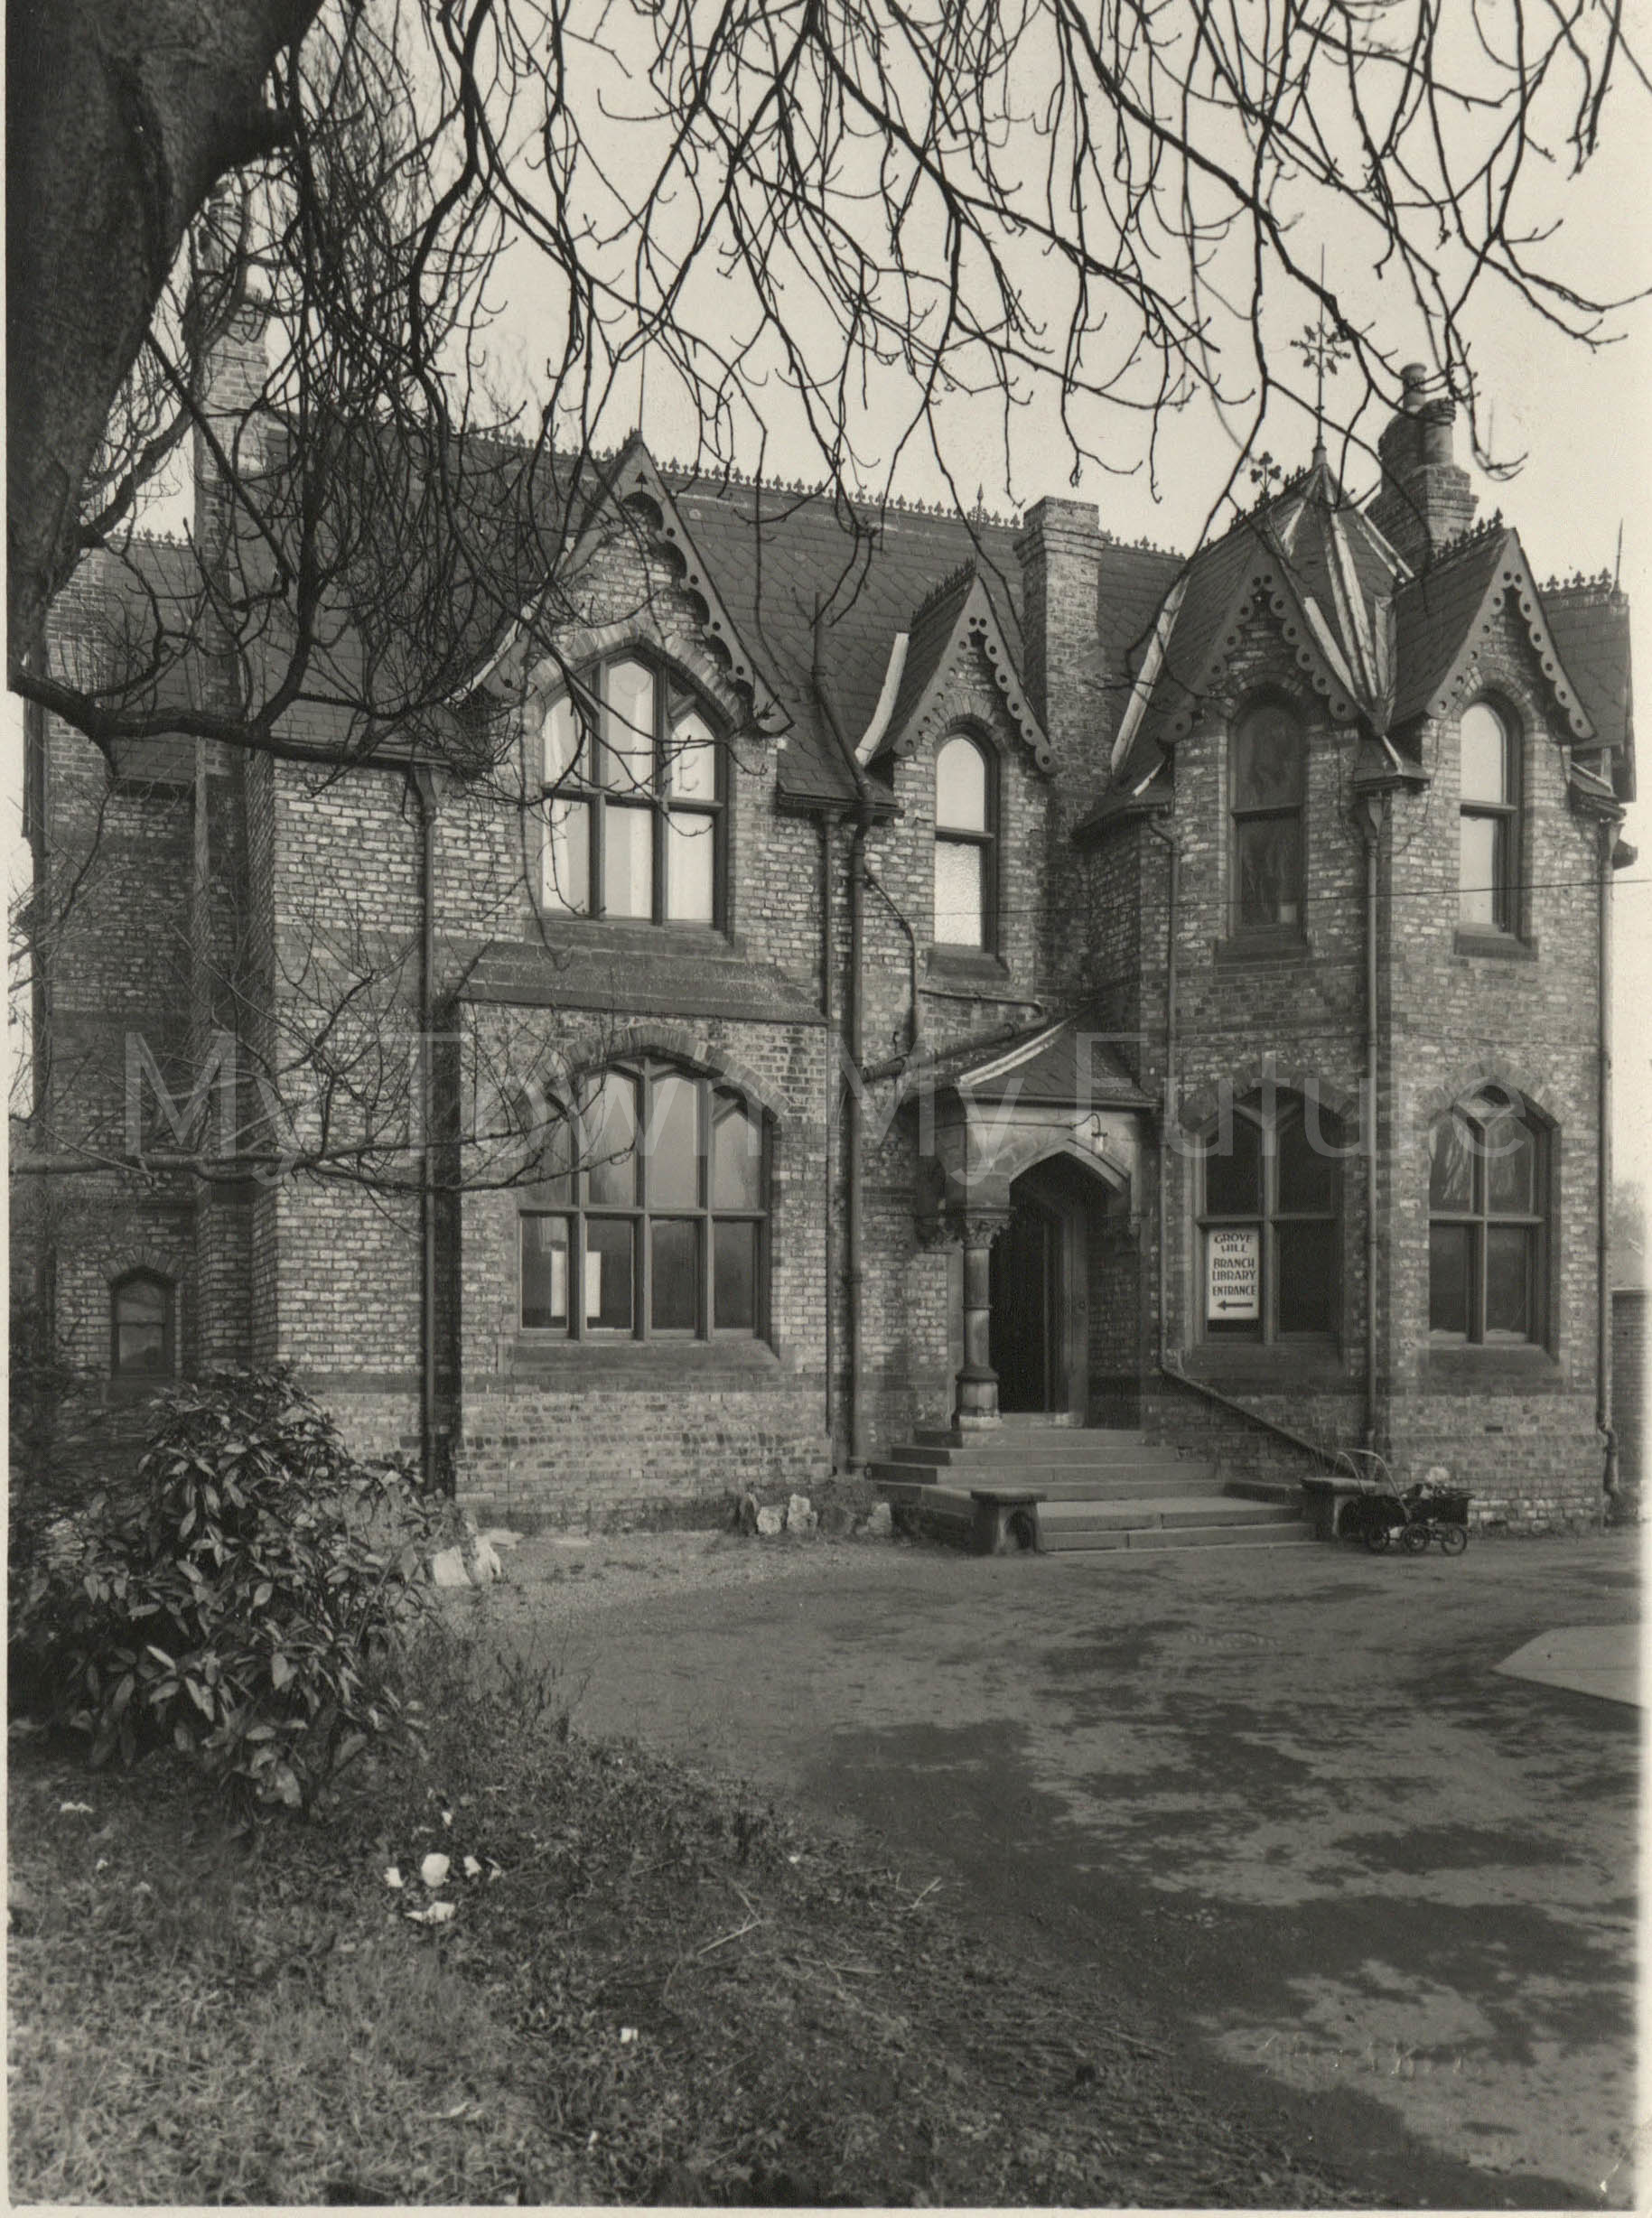 Grove Hill Branch Library Opening, 1947, Mather's Photographers, 140 Linthorpe Road, Middlesbrough